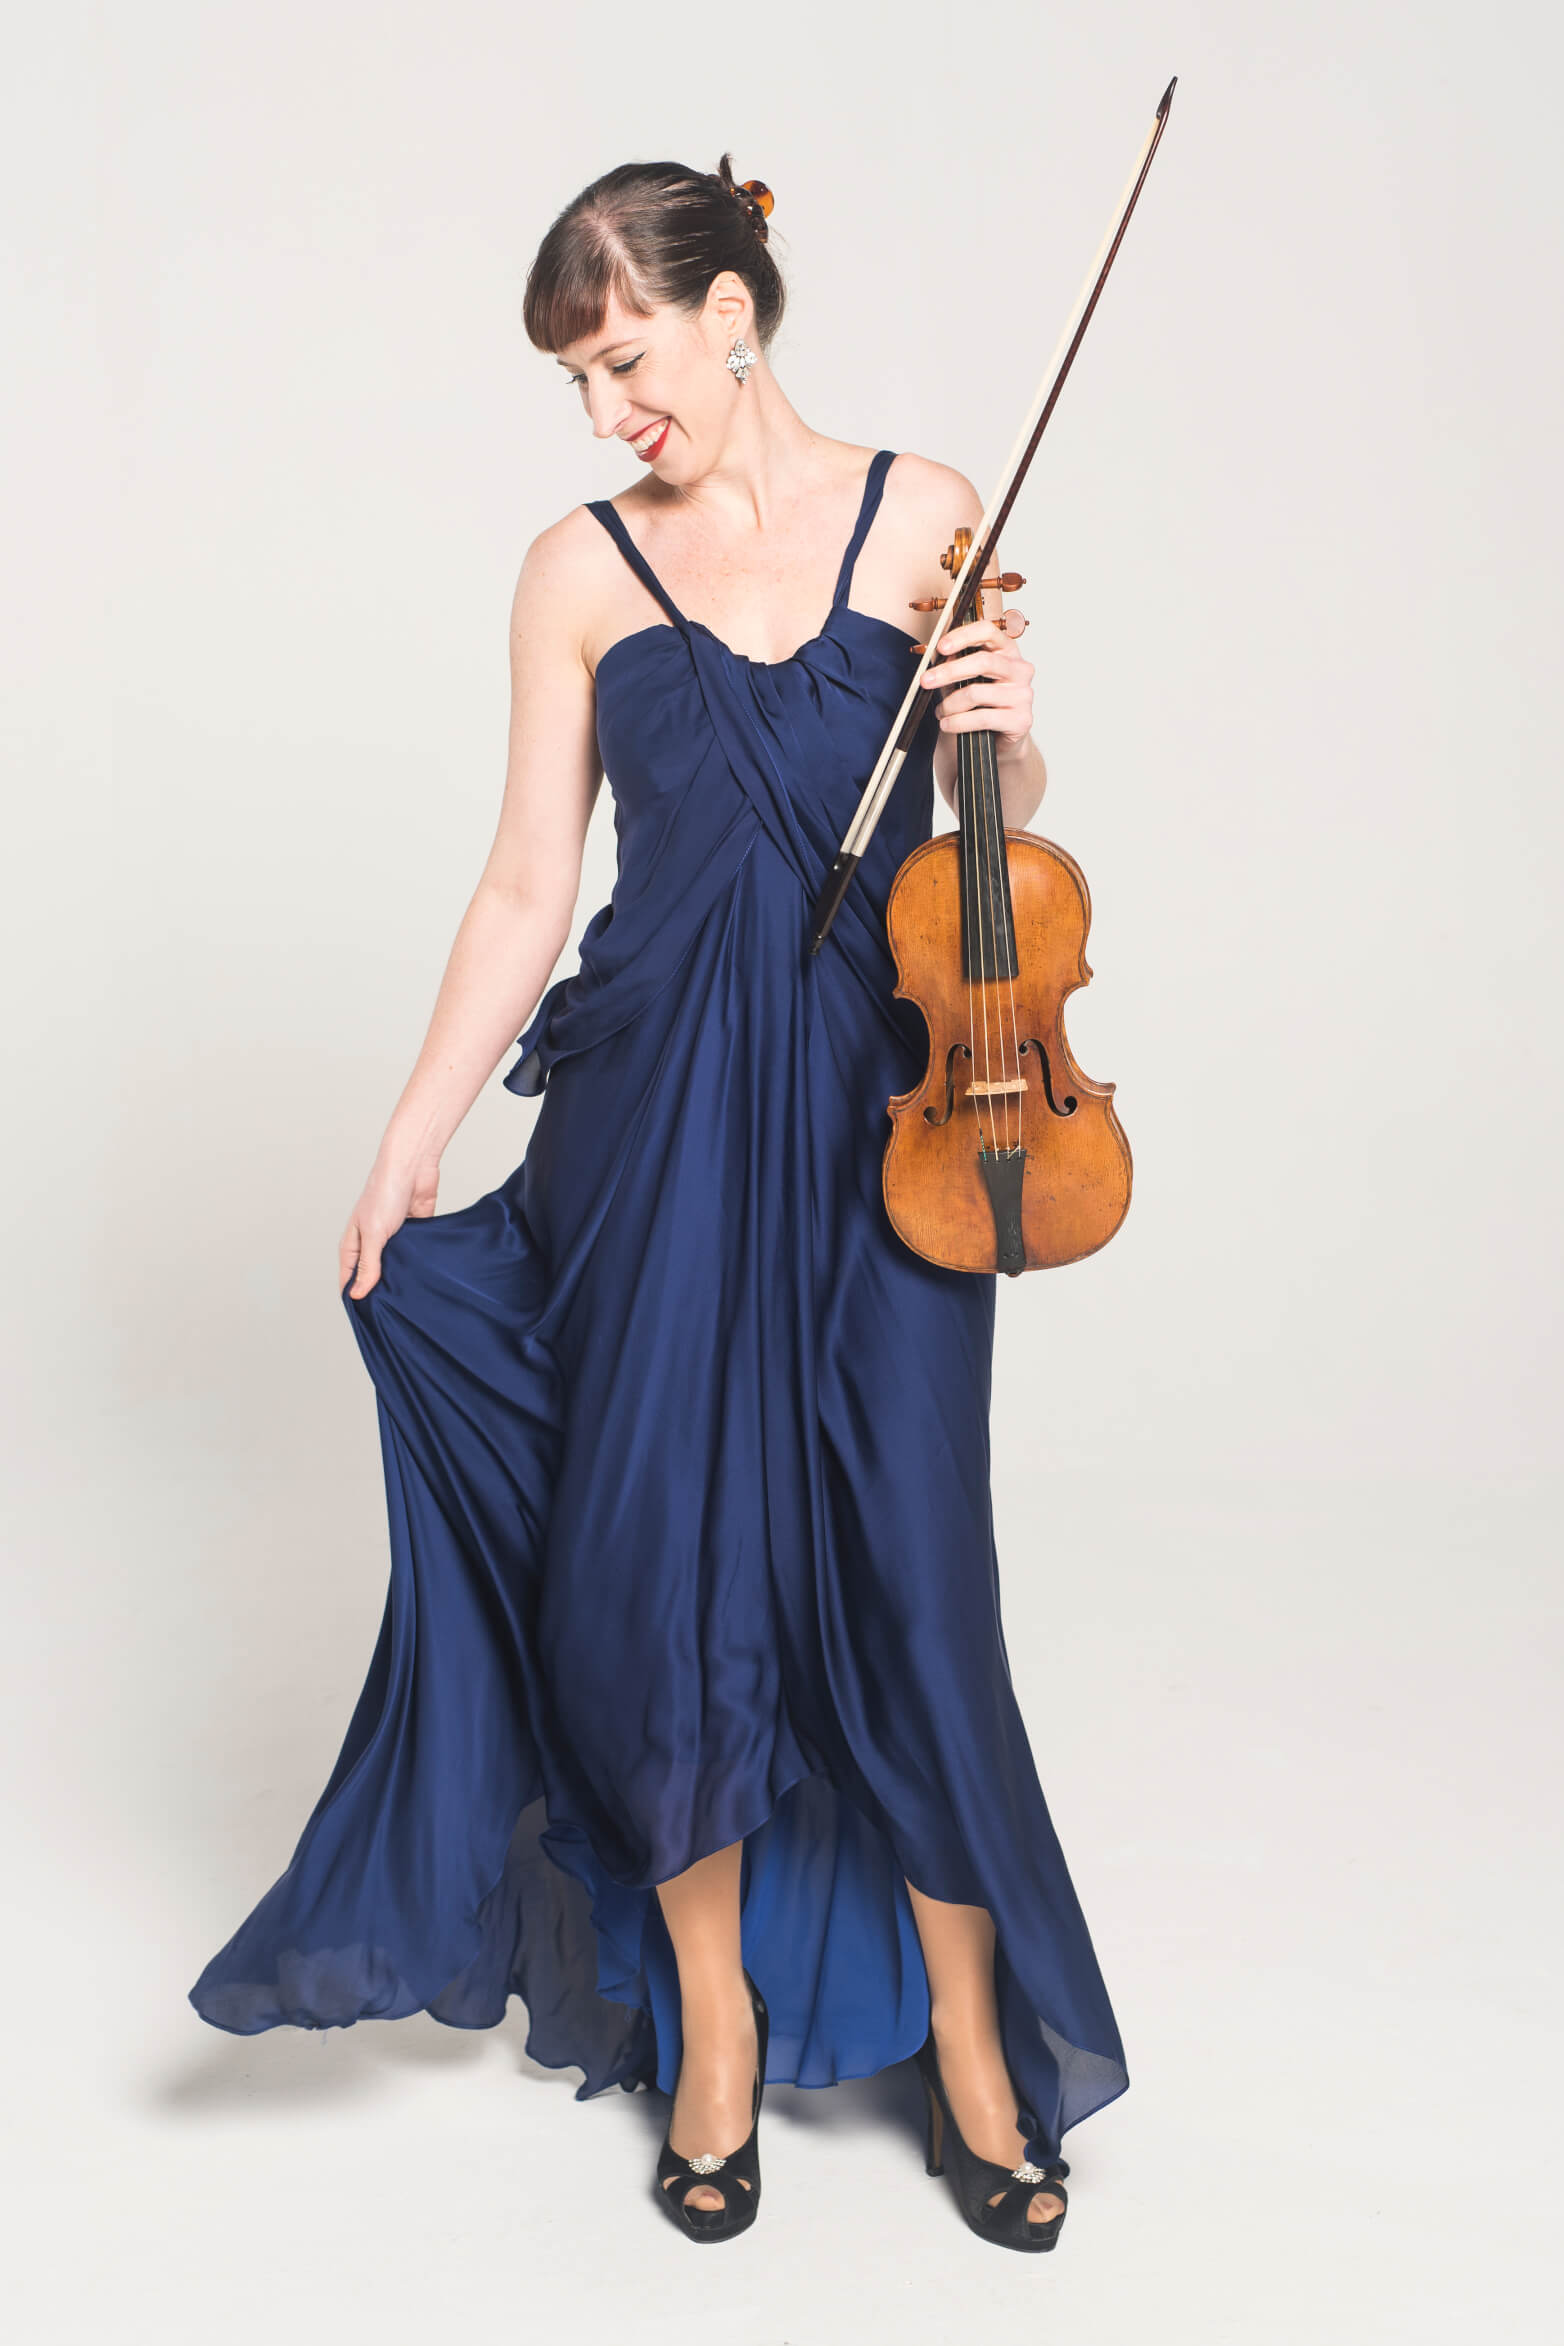 Madeleine Easton wearing a fabulous deep blue dress and holding her violin.